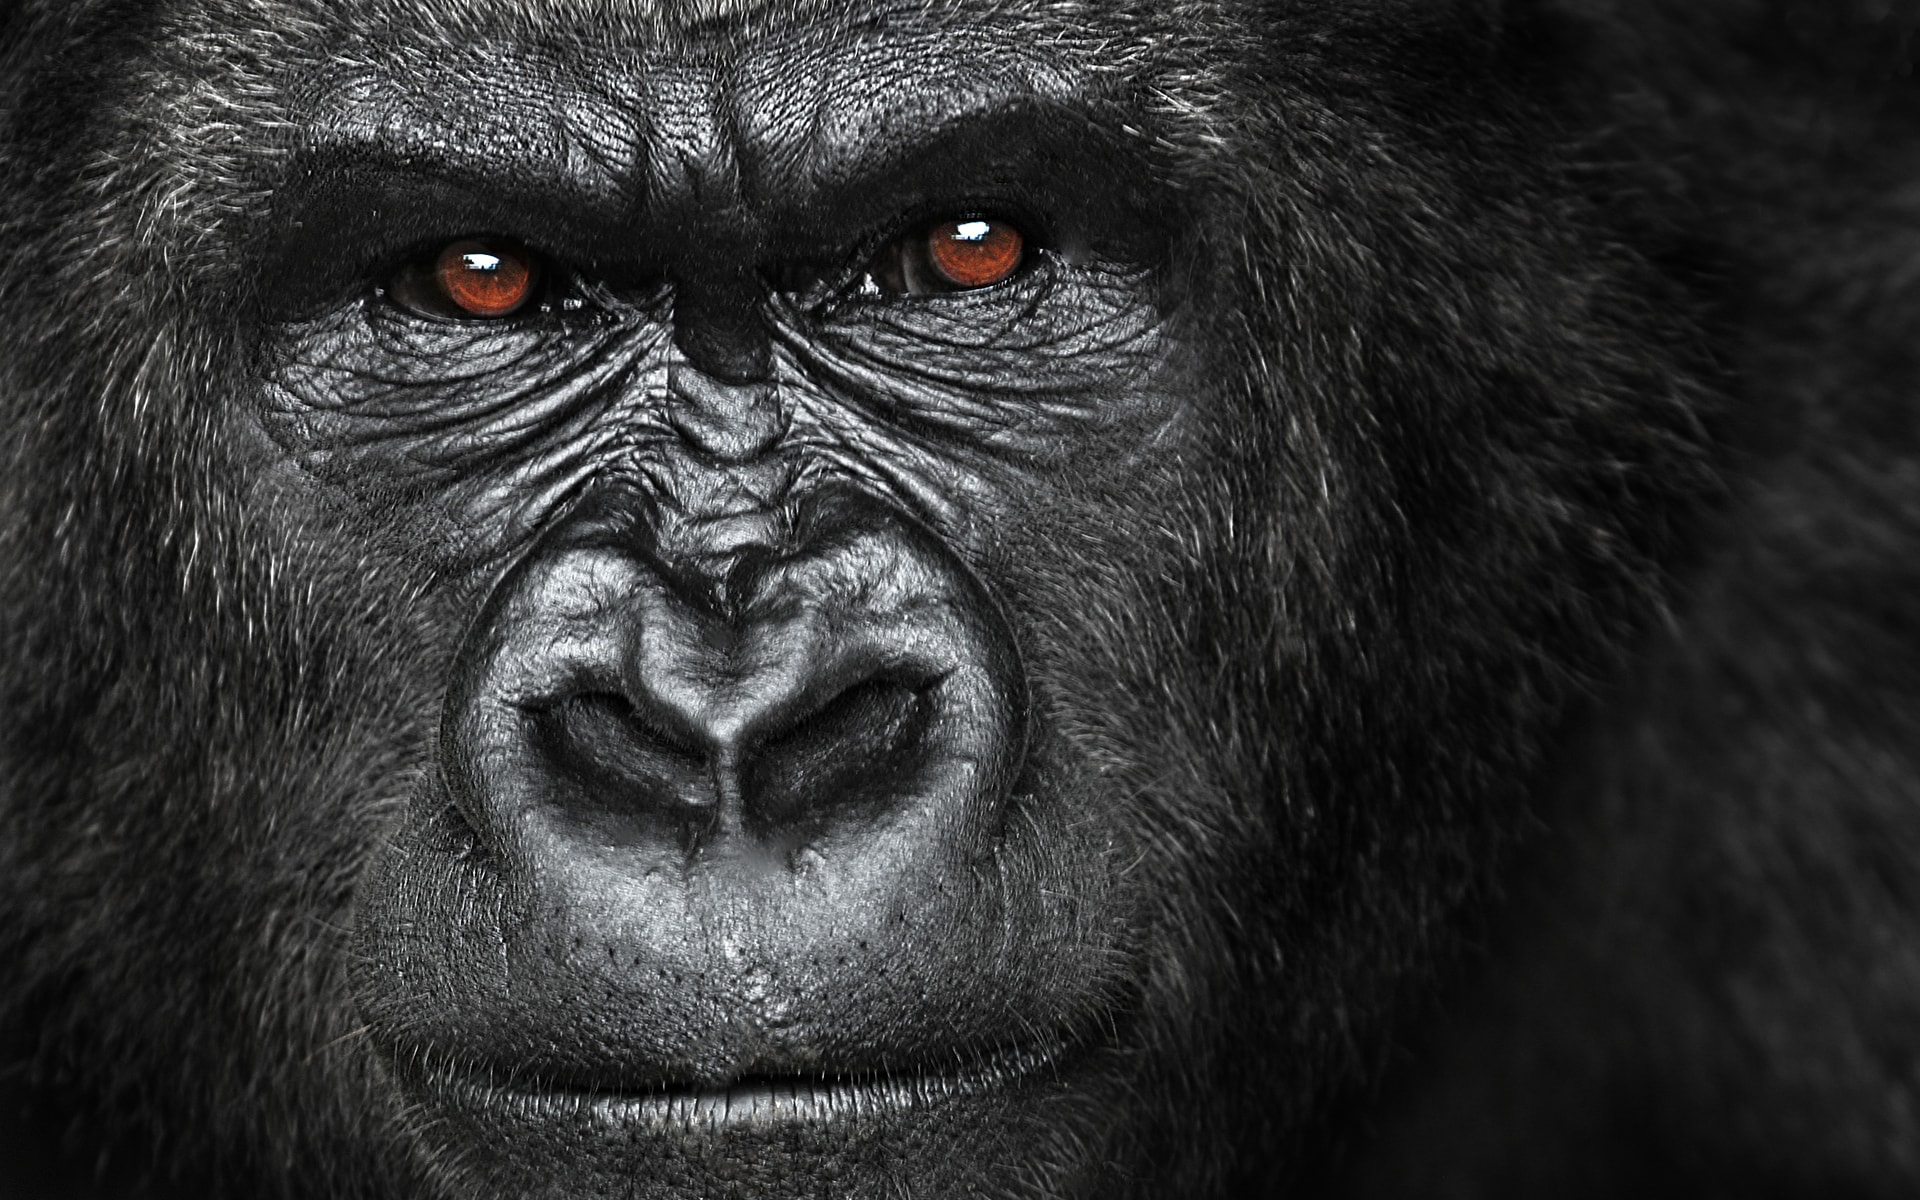 Gorilla Hd Wallpapers 7wallpapersnet